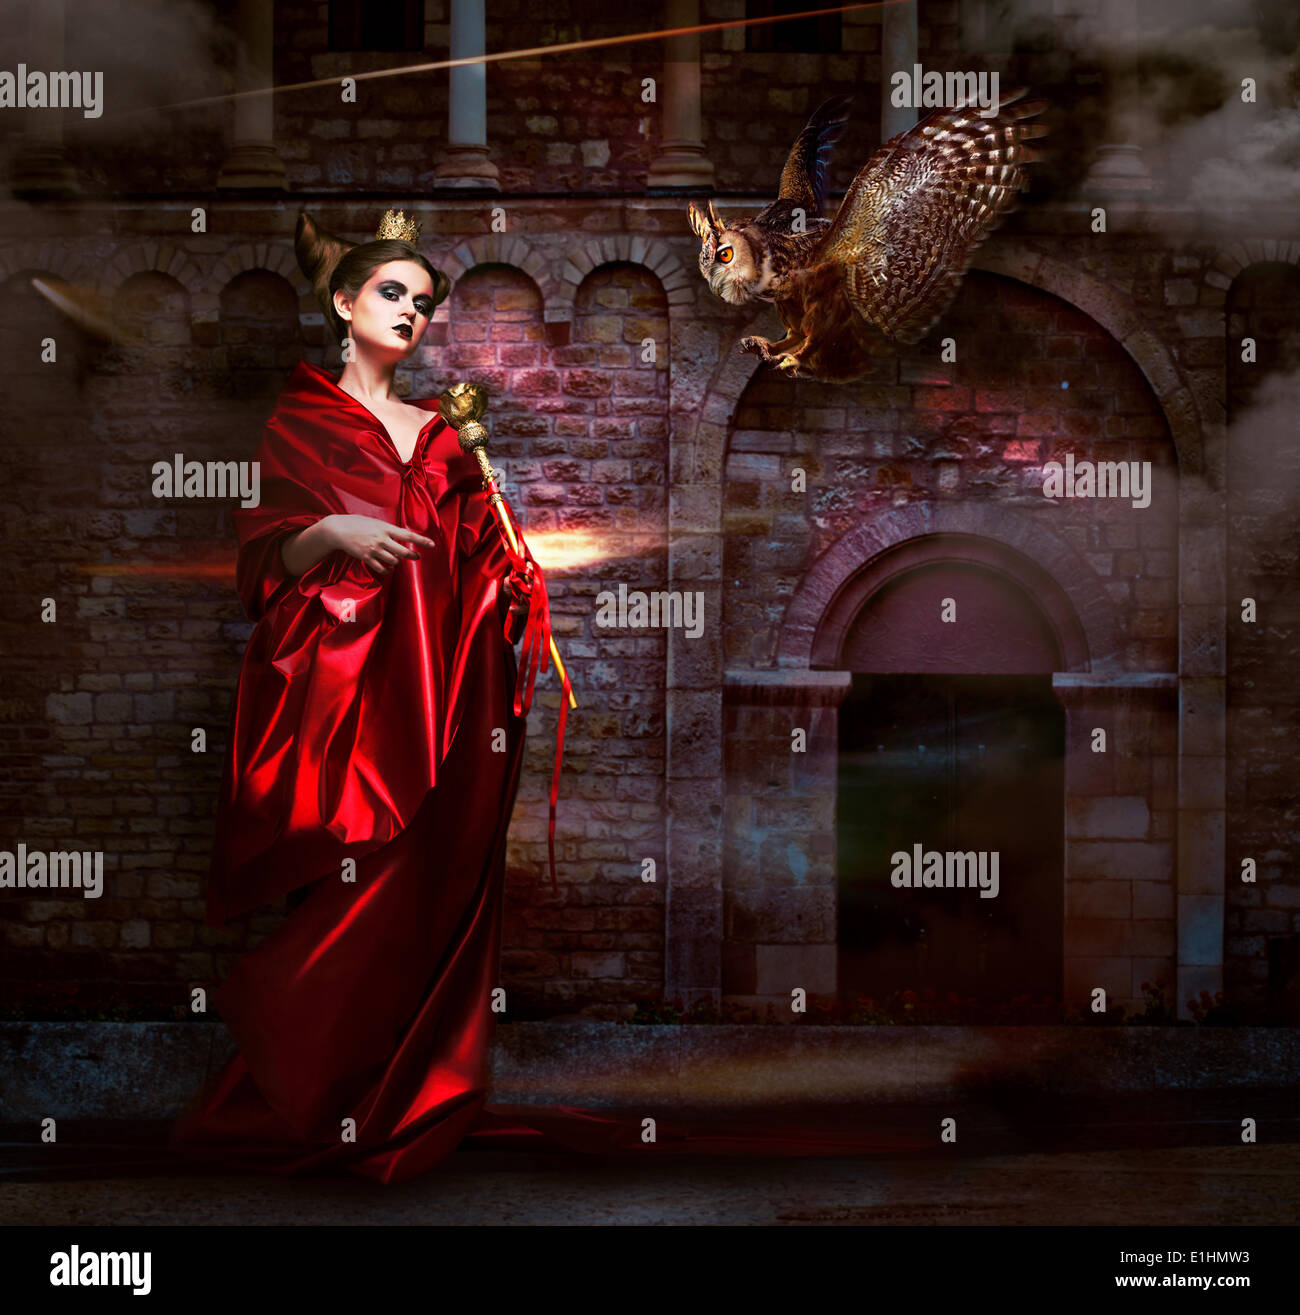 Mysticism.  Witchcraft. Sorcerer in Red Mantle with Vulture - Hawk. Ancient Scary Castle - Stock Image